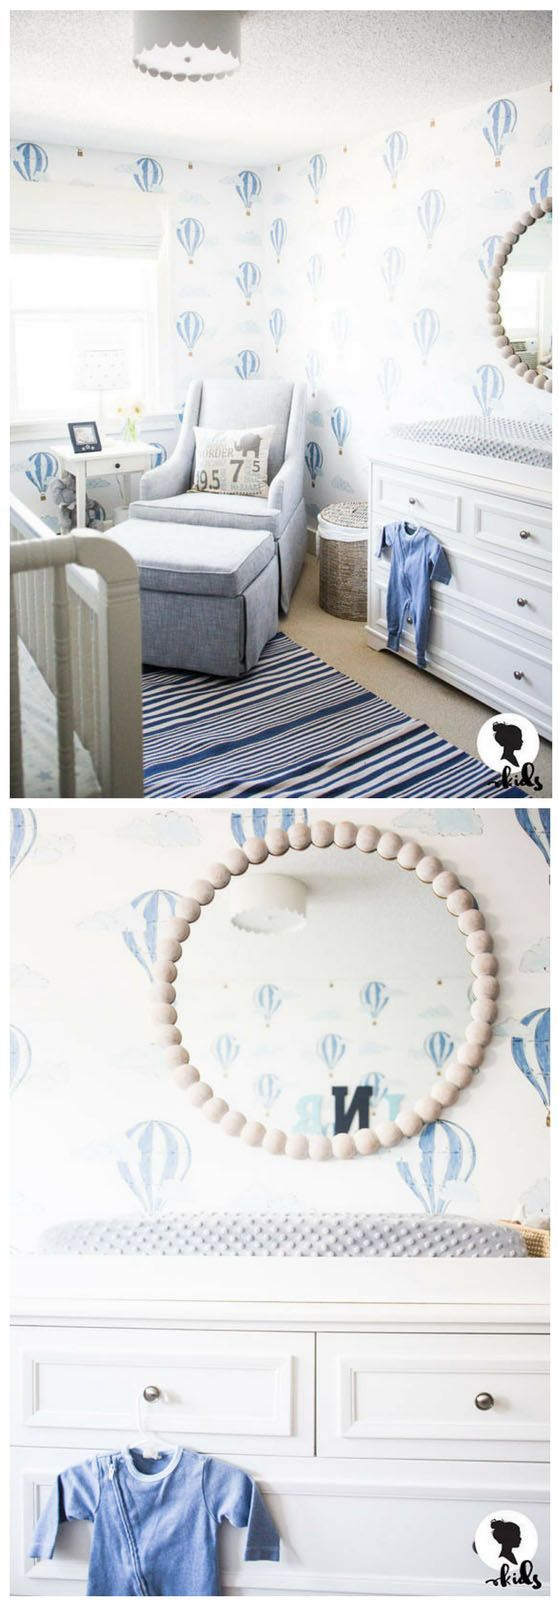 Such a sweet baby boy nursery. Too many air balloons, but love the soft blue